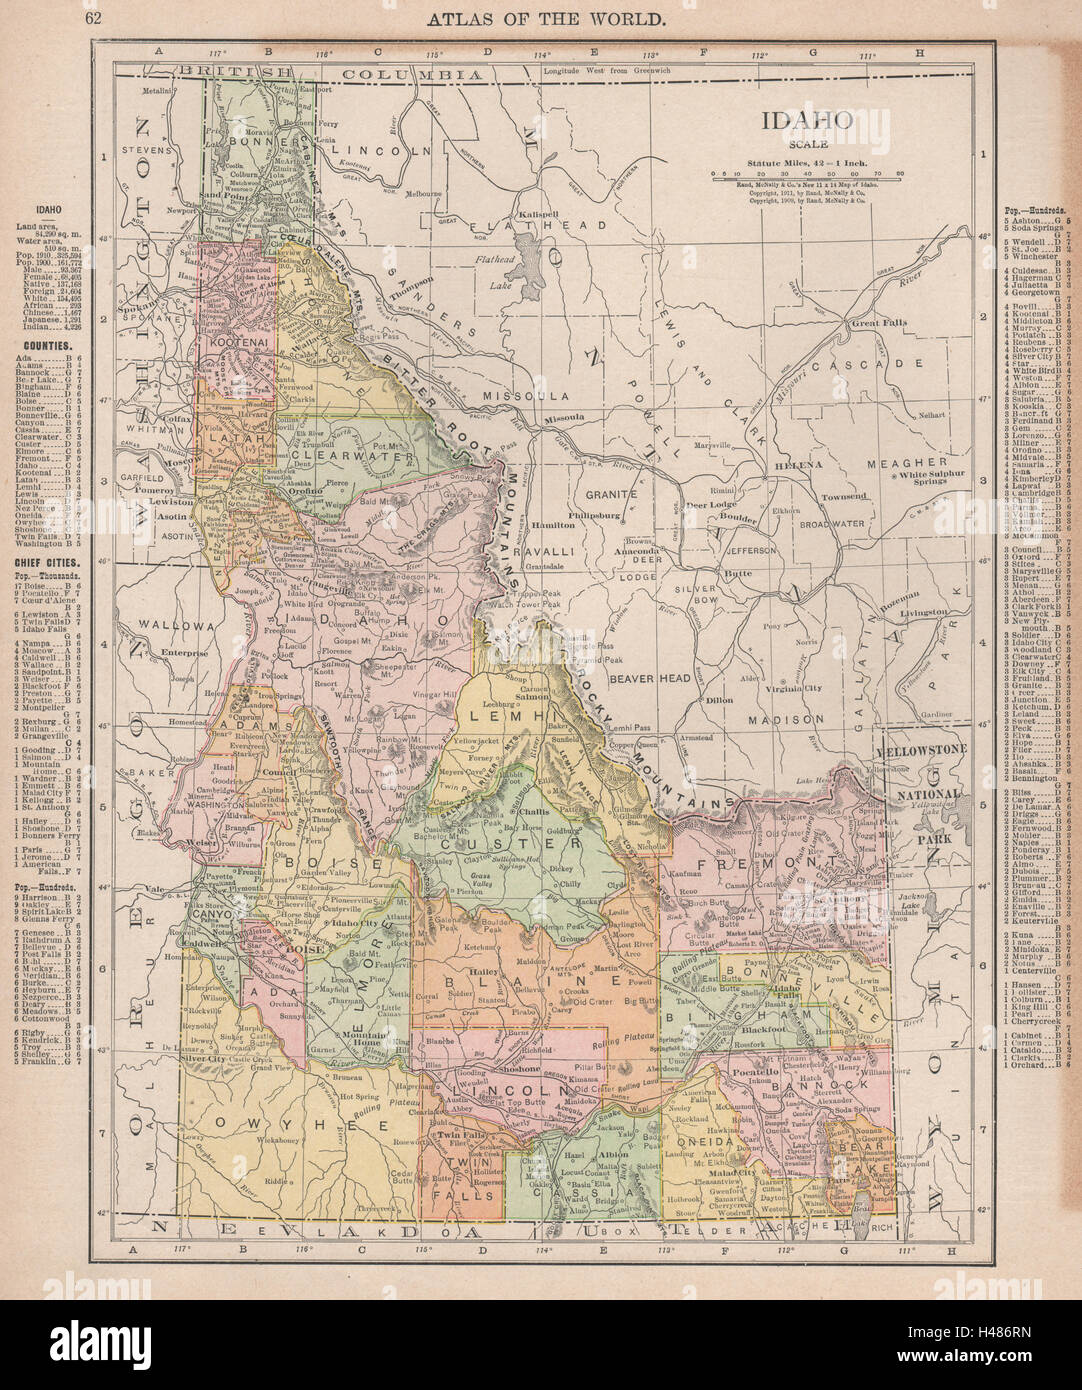 Idaho State Map Showing Counties Rand Mcnally 1912 Old Antique Plan